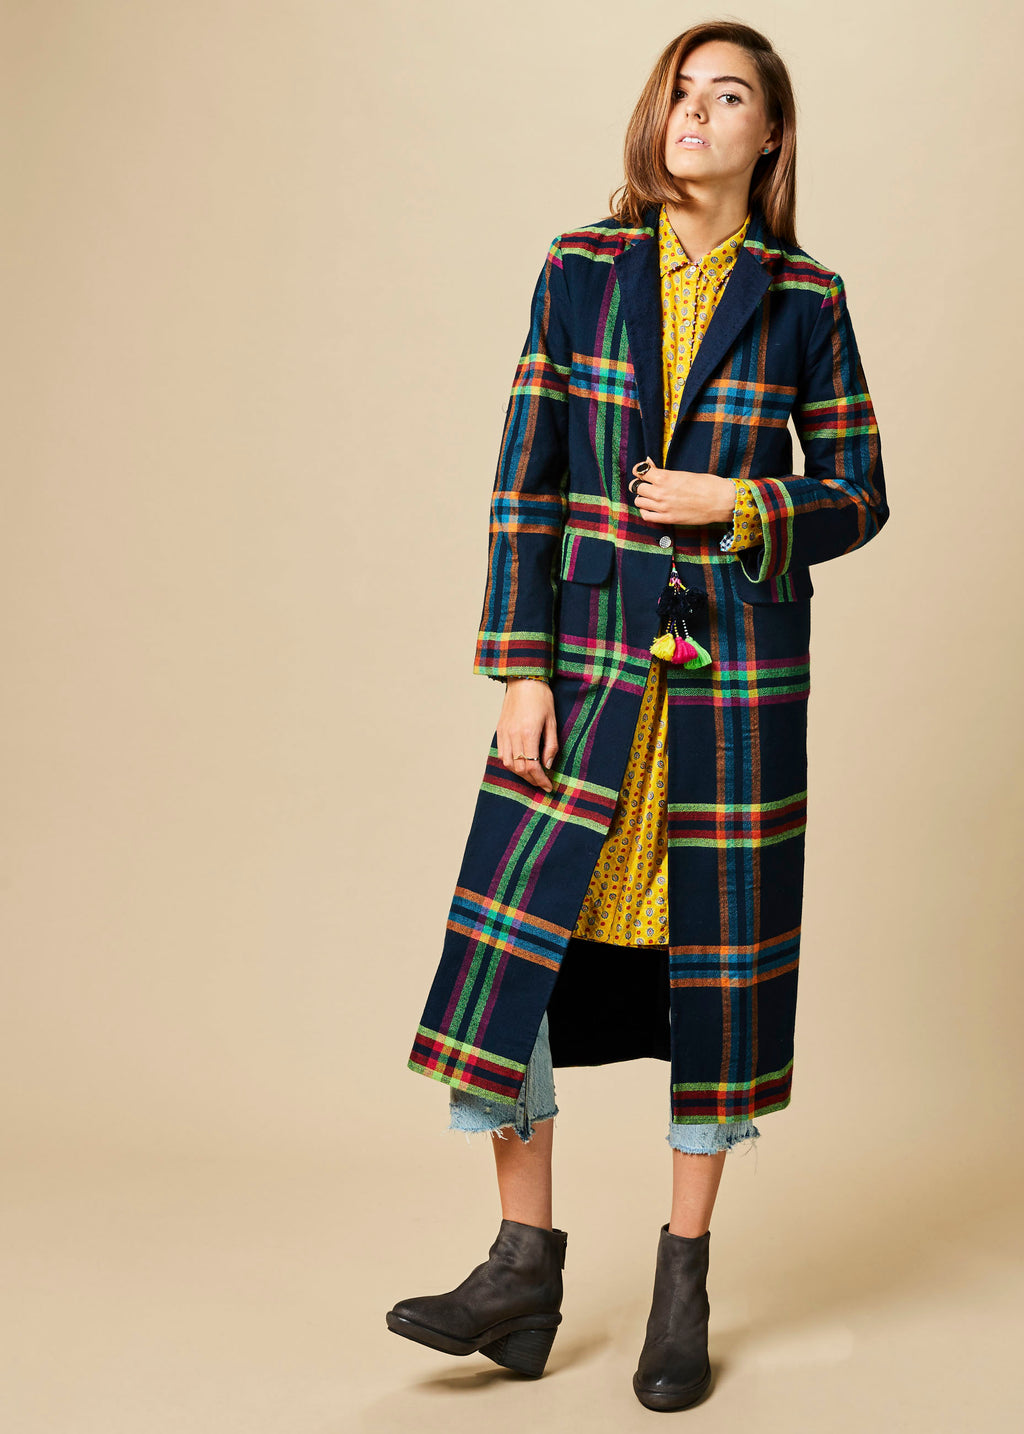 Neon Plaid Reversible Coat